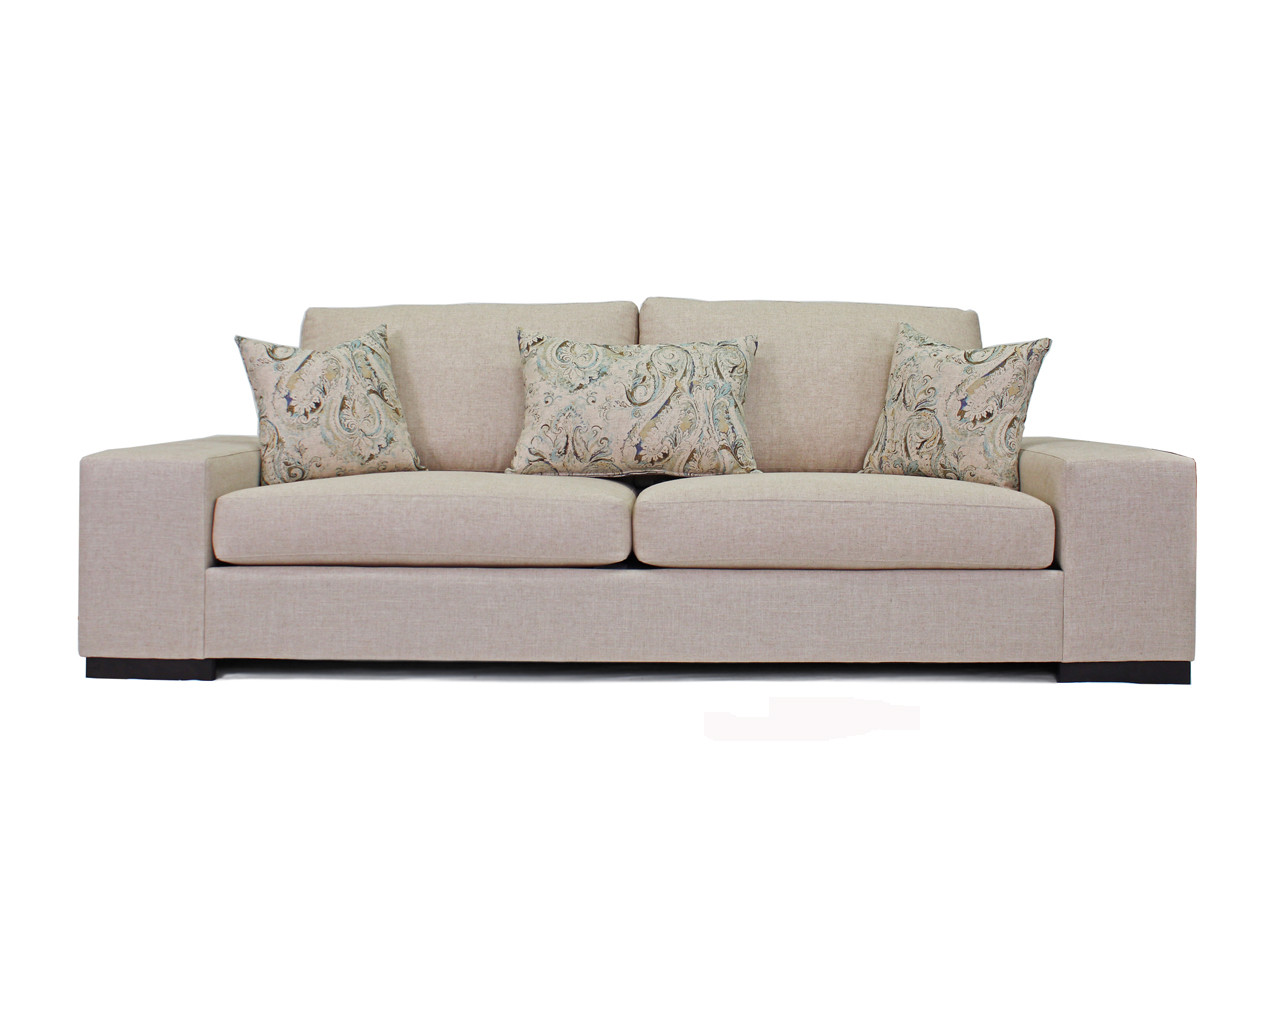 Made Sofa Shop Axel Sofa